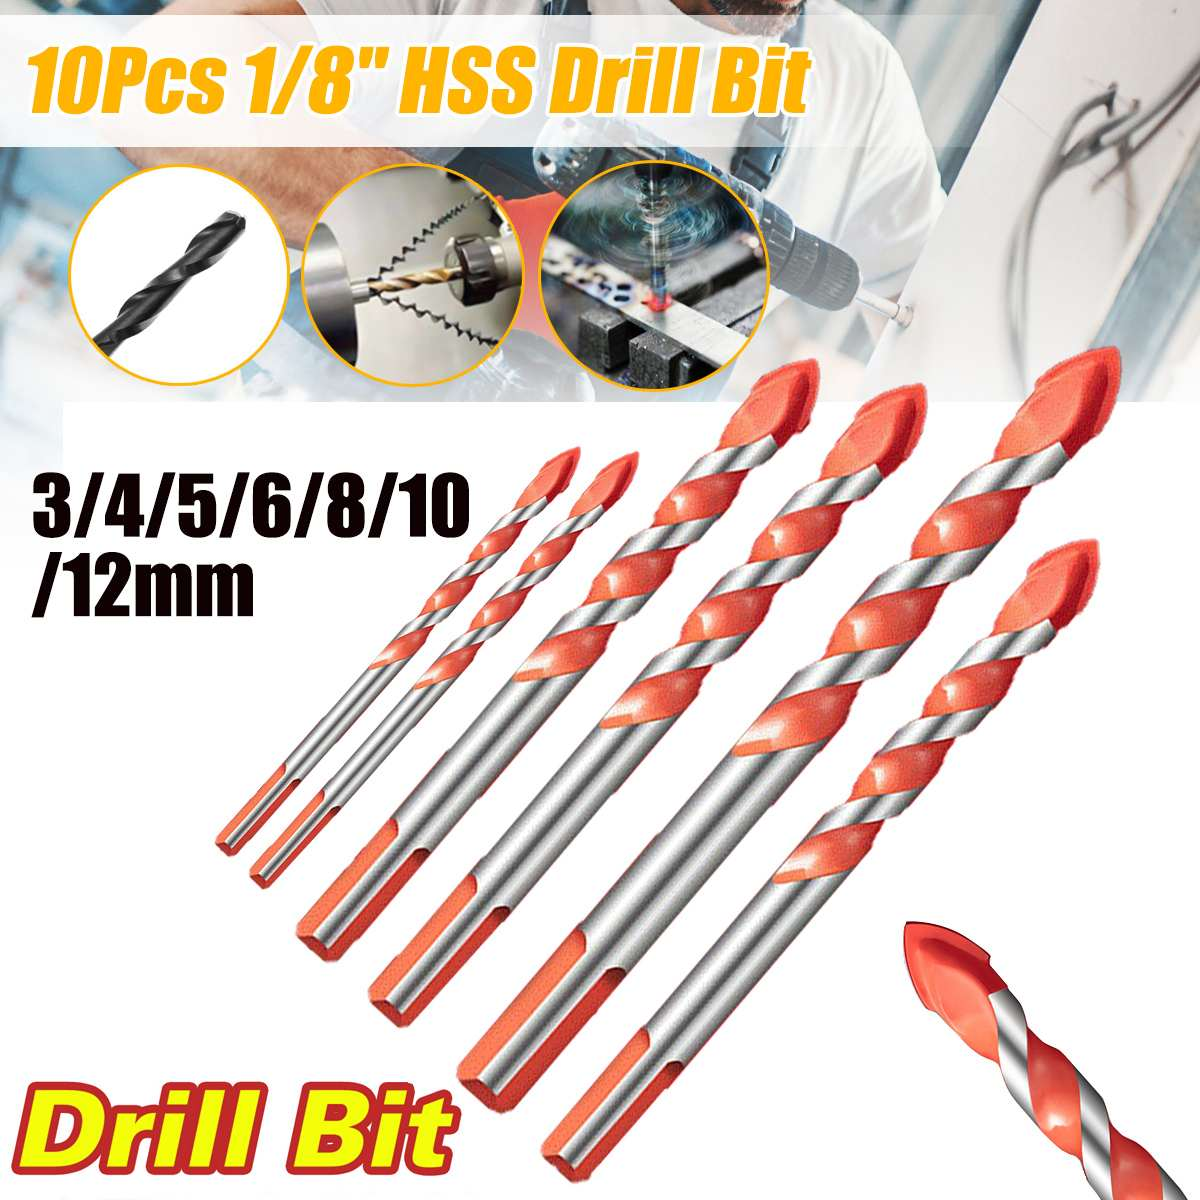 5/7Pcs Drill Bits Triangle Handle Alloy Multifunctional Drill Bits 6-12mm Blade Diameter For Ceramic Glass Hole Wall Cobalt